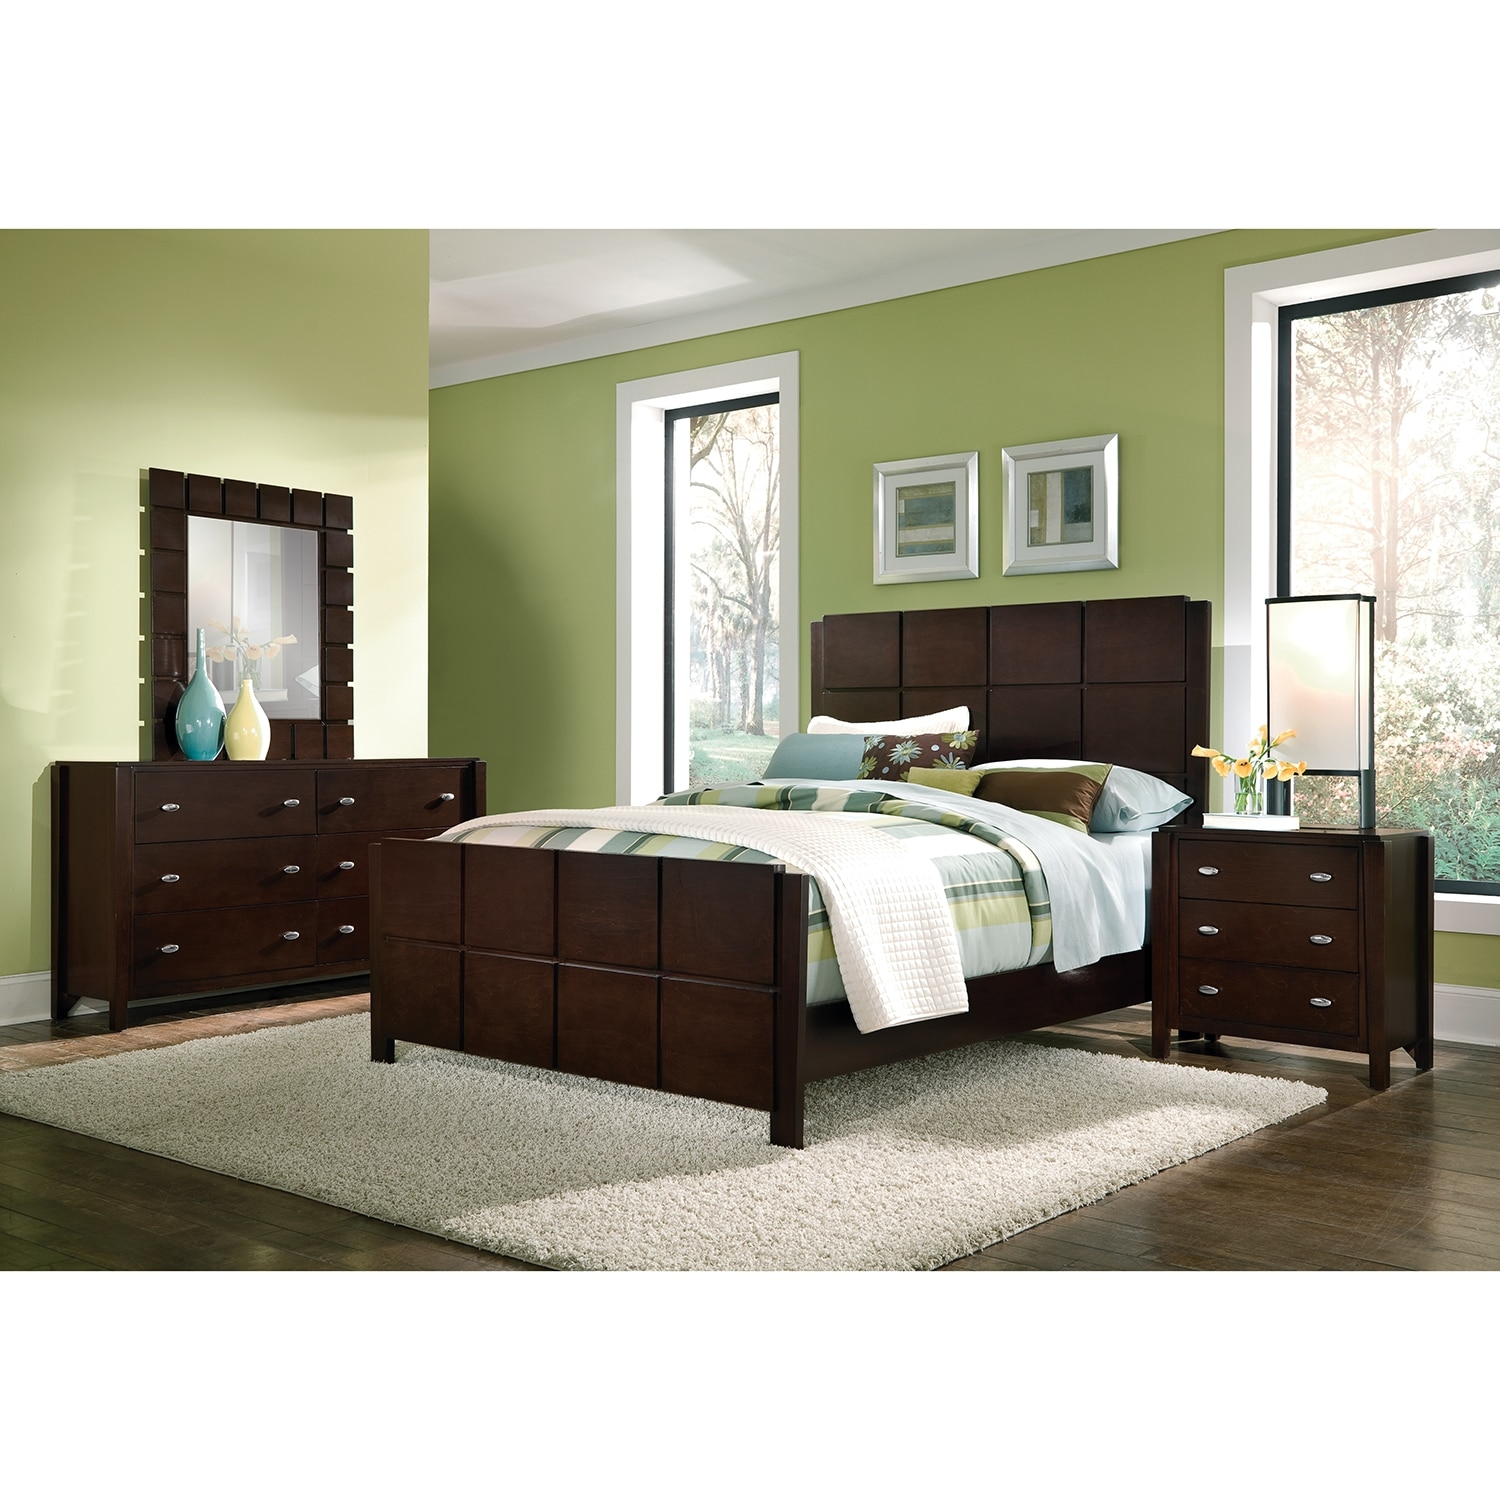 bedroom furniture value city furniture. Black Bedroom Furniture Sets. Home Design Ideas